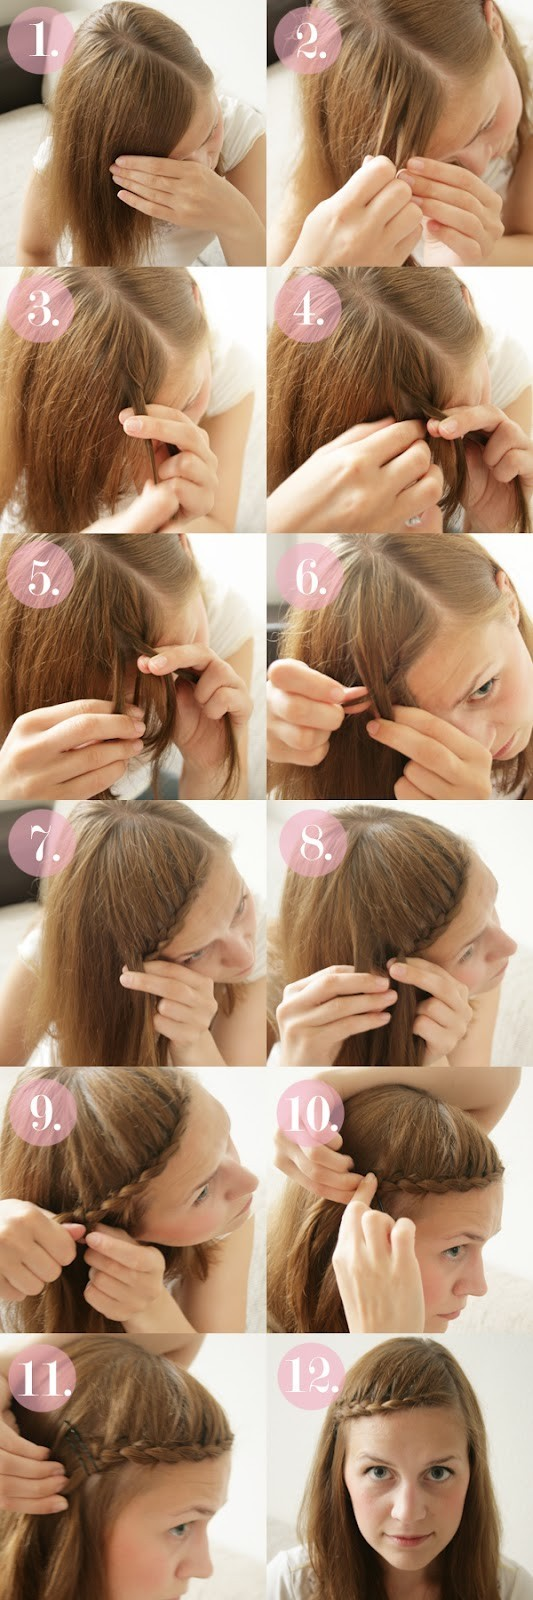 Miraculous 15 Braided Bangs Tutorials Cute Easy Hairstyles Pretty Designs Hairstyle Inspiration Daily Dogsangcom